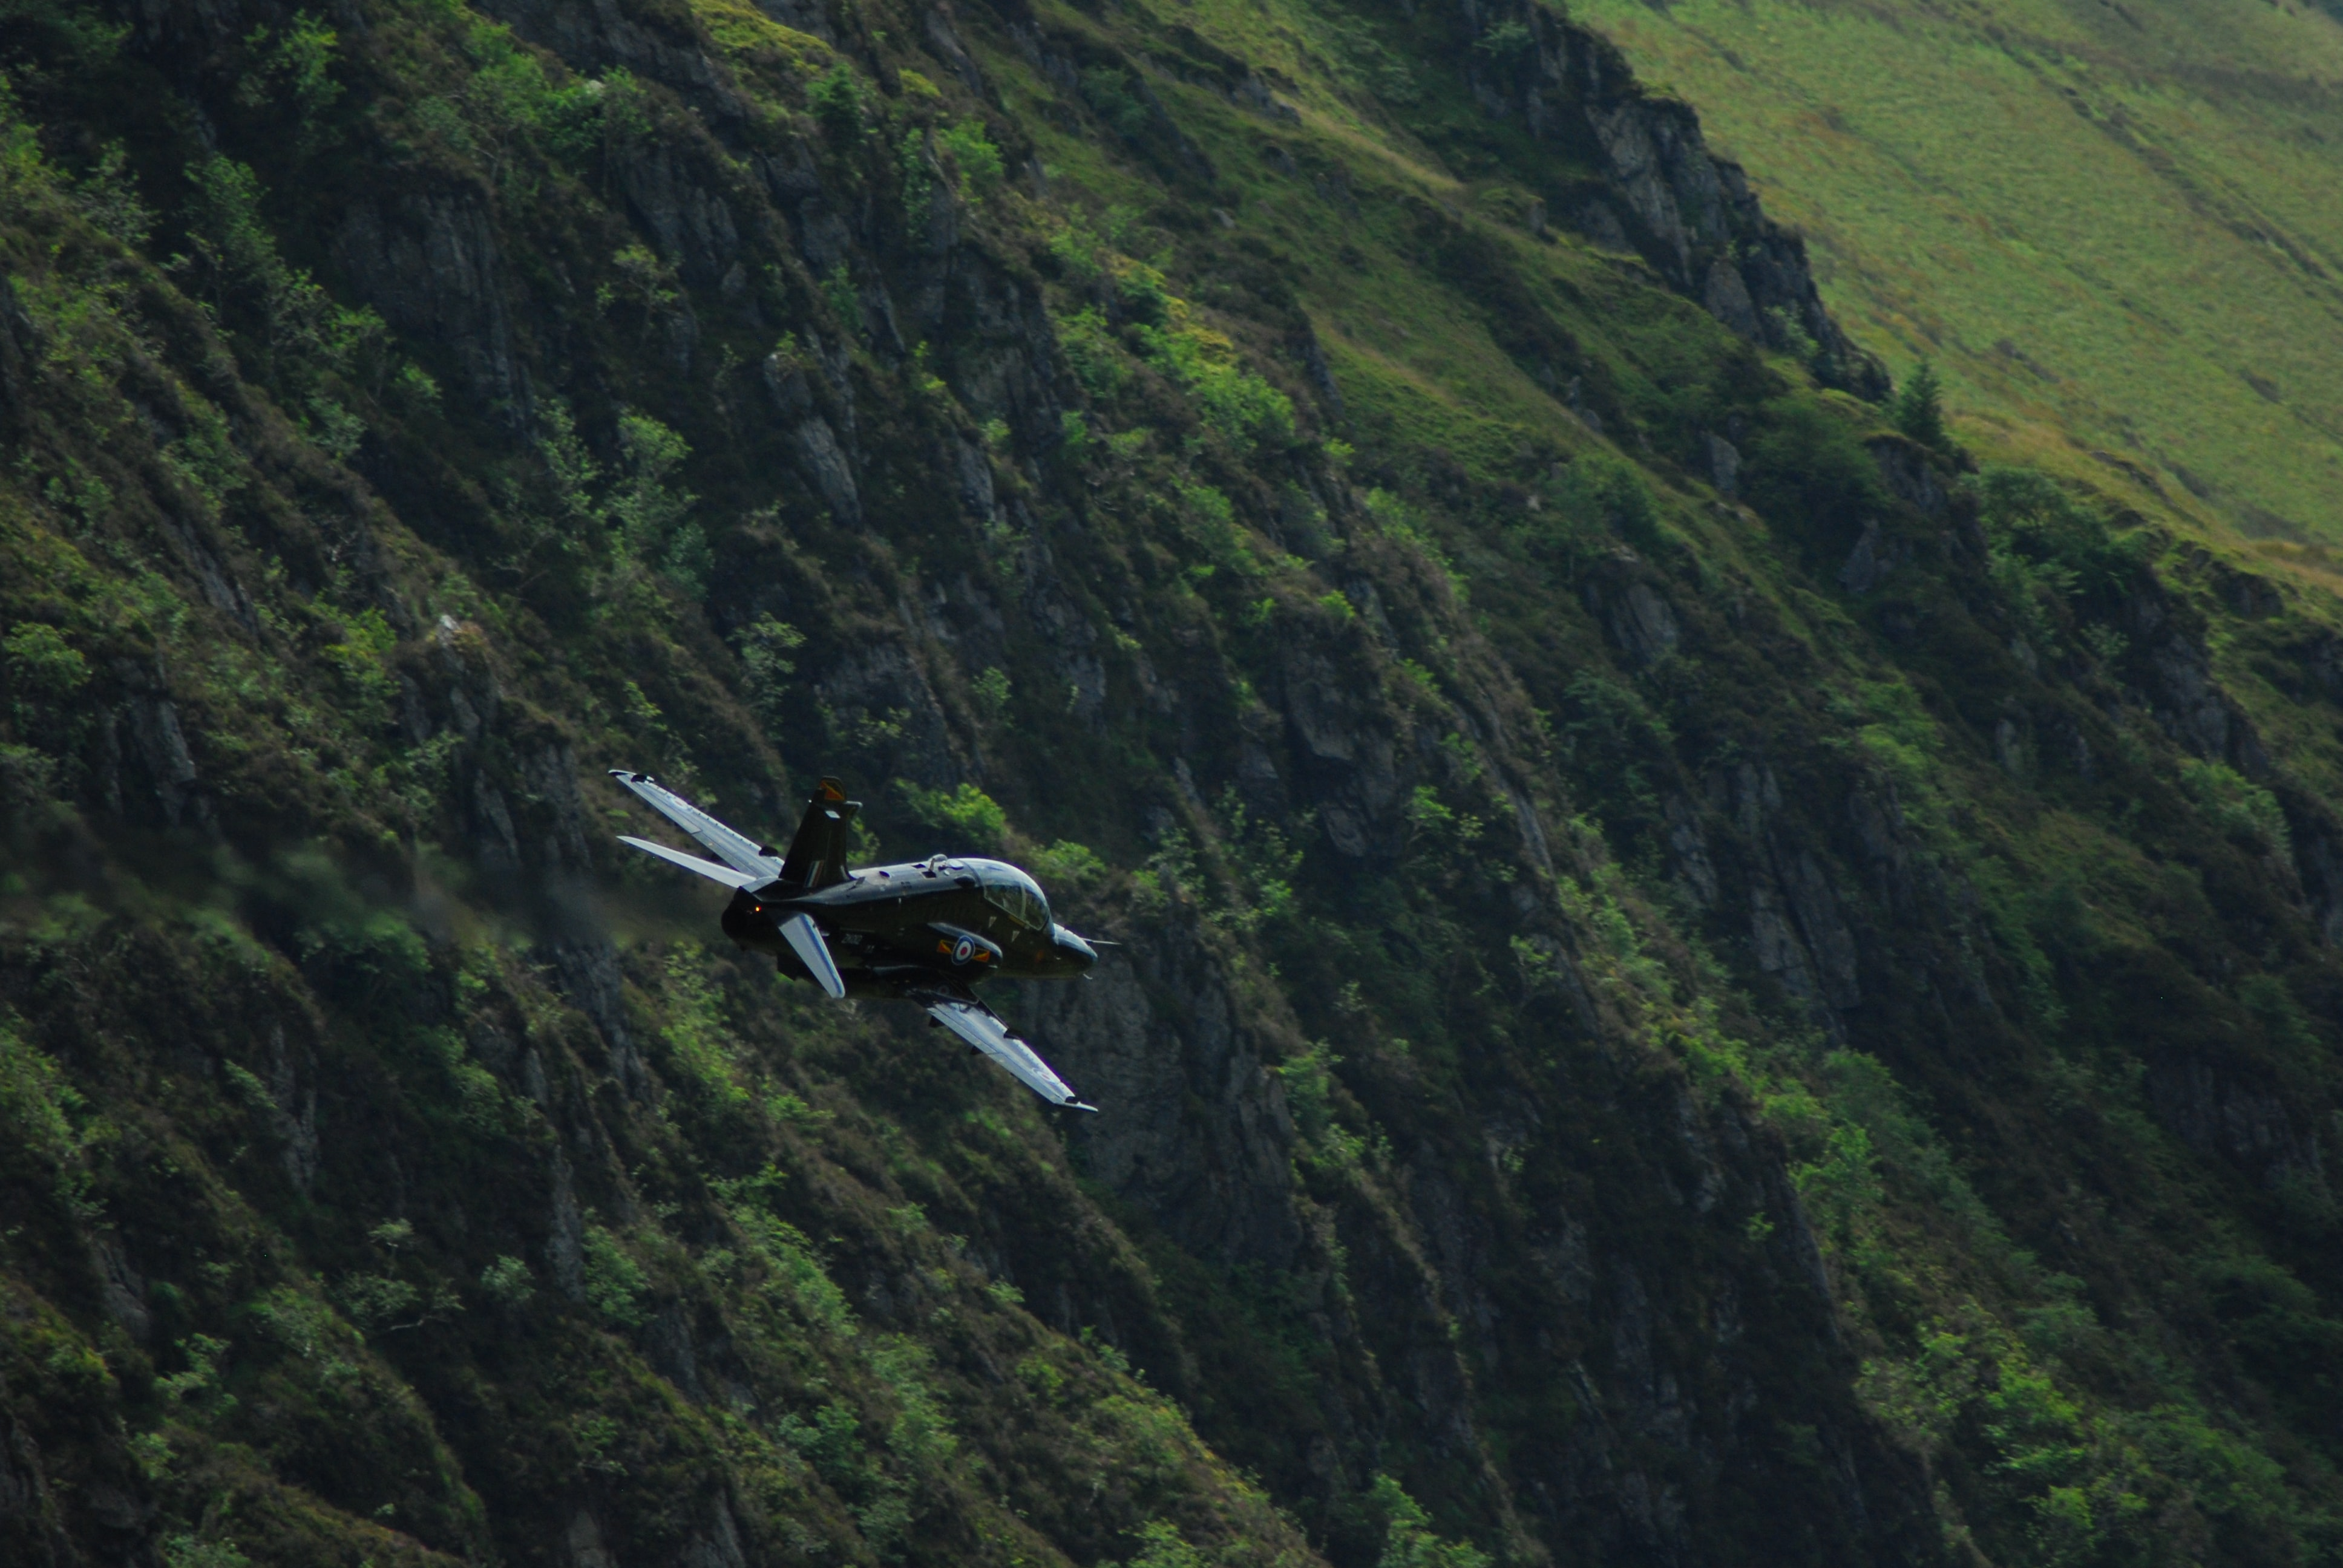 Airplane flies along the side of a lush green hillside